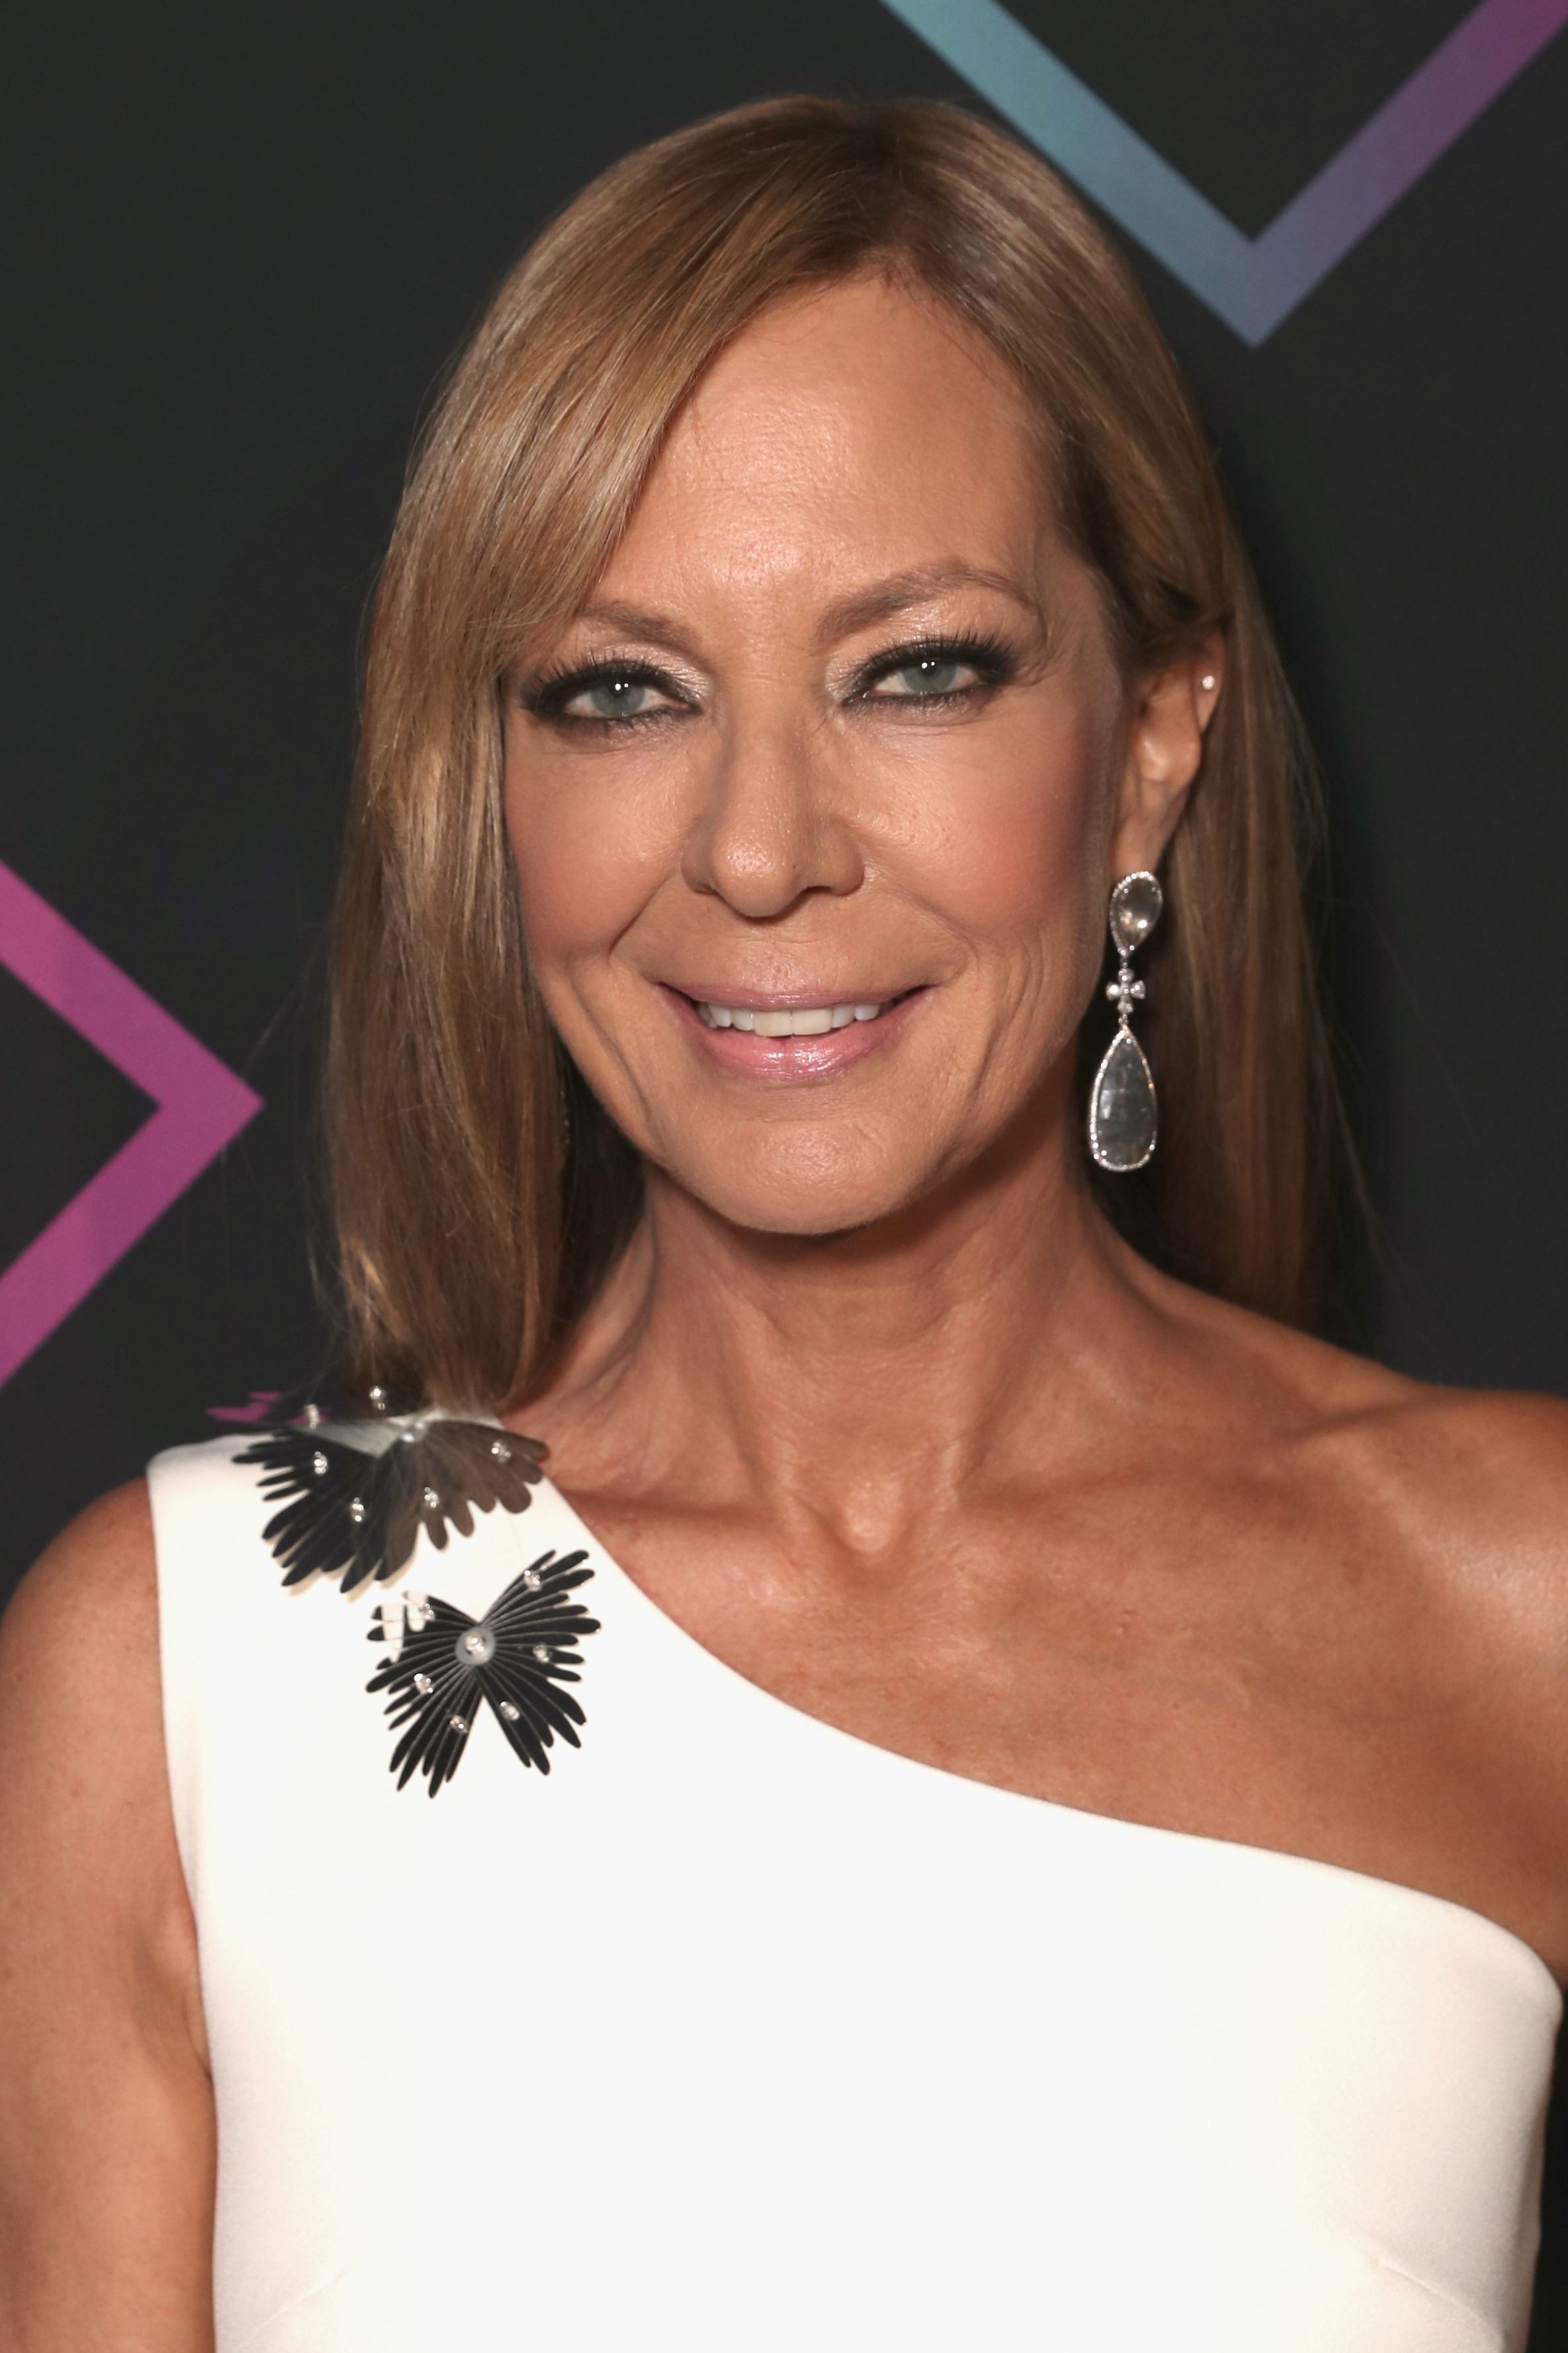 Allison Janney Hair 2018 E! People's Choice Awards - Backstage